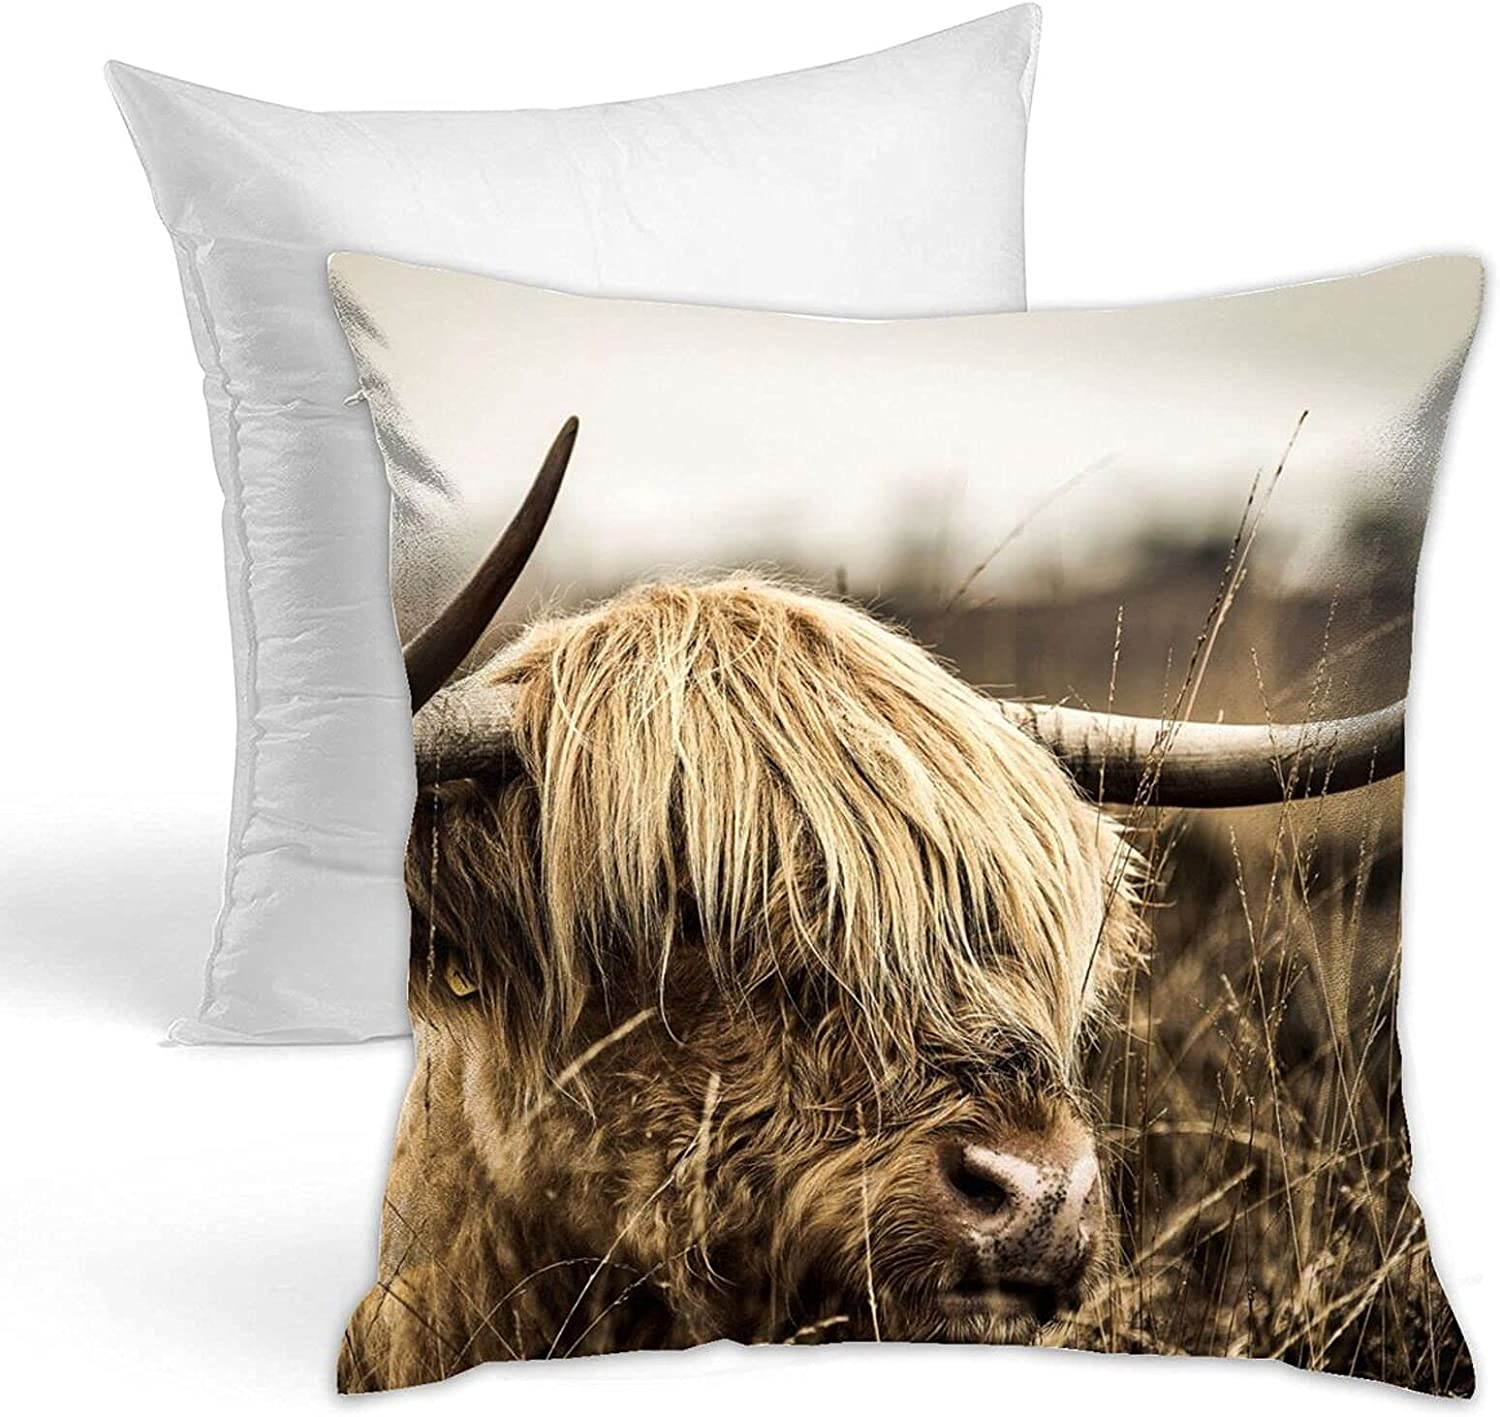 JUCHen Throw Pillow Highland Cow Tampa Mall Popularity for Cattle Decorative Be